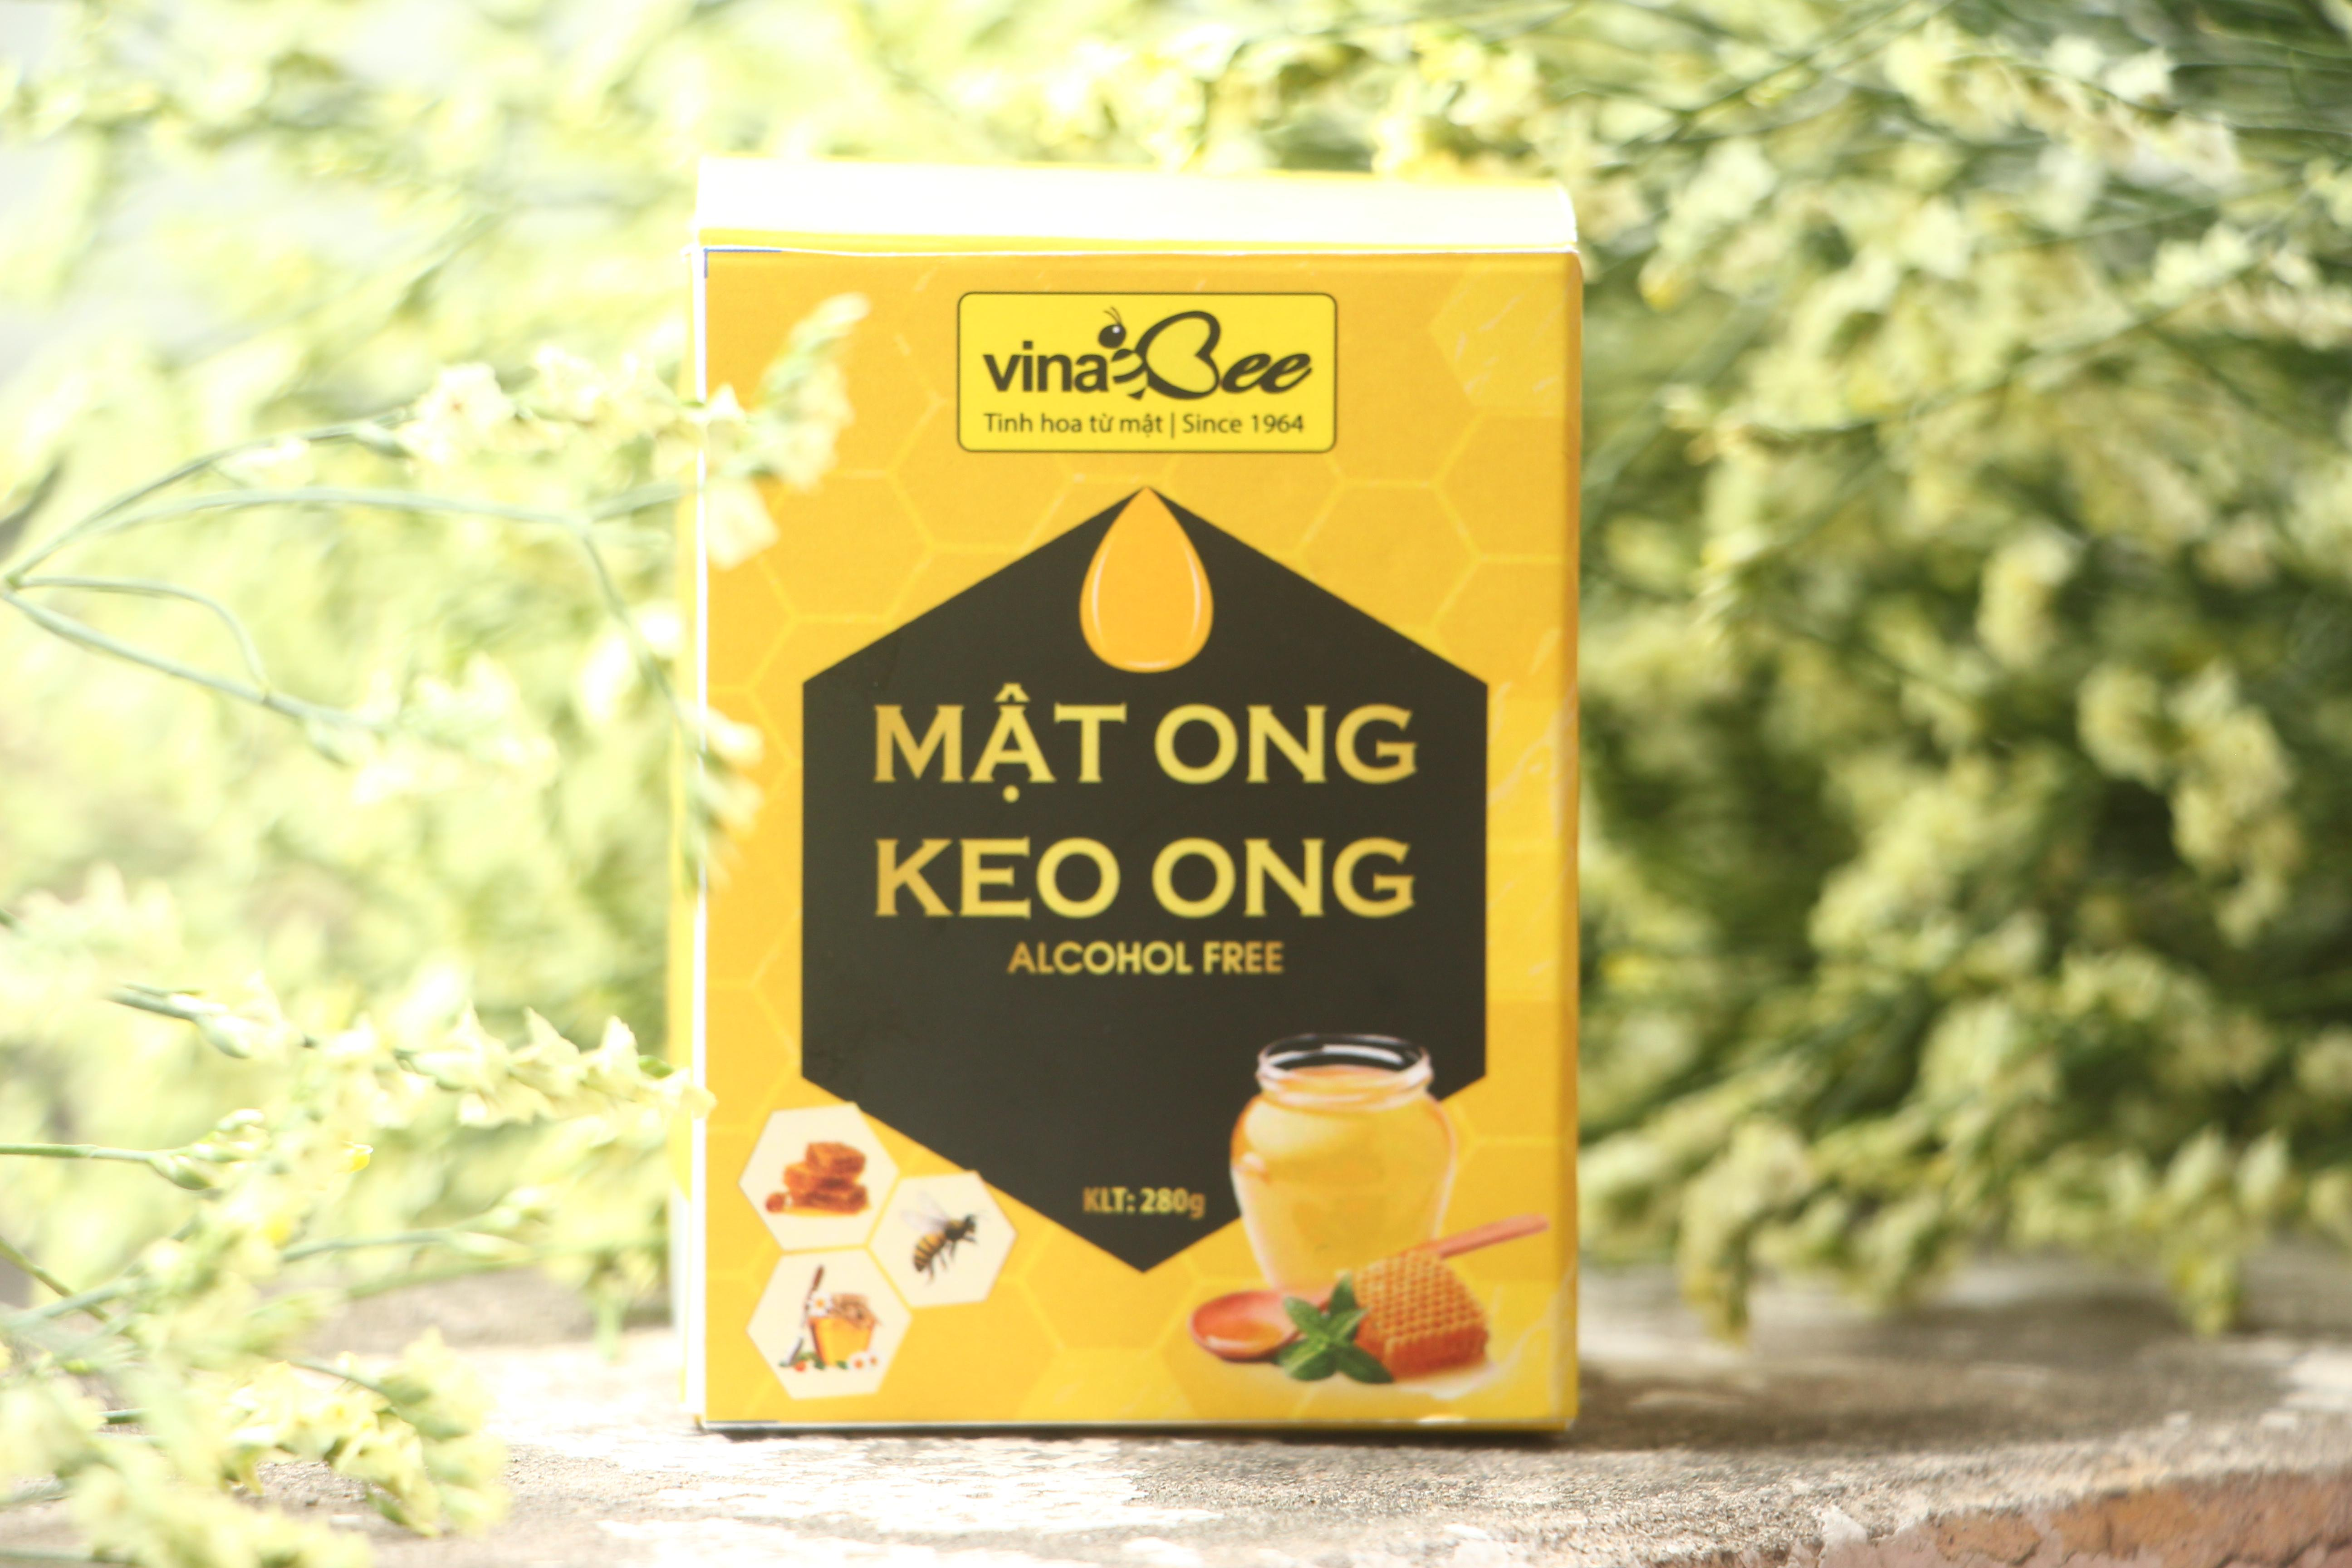 Mật ong keo ong